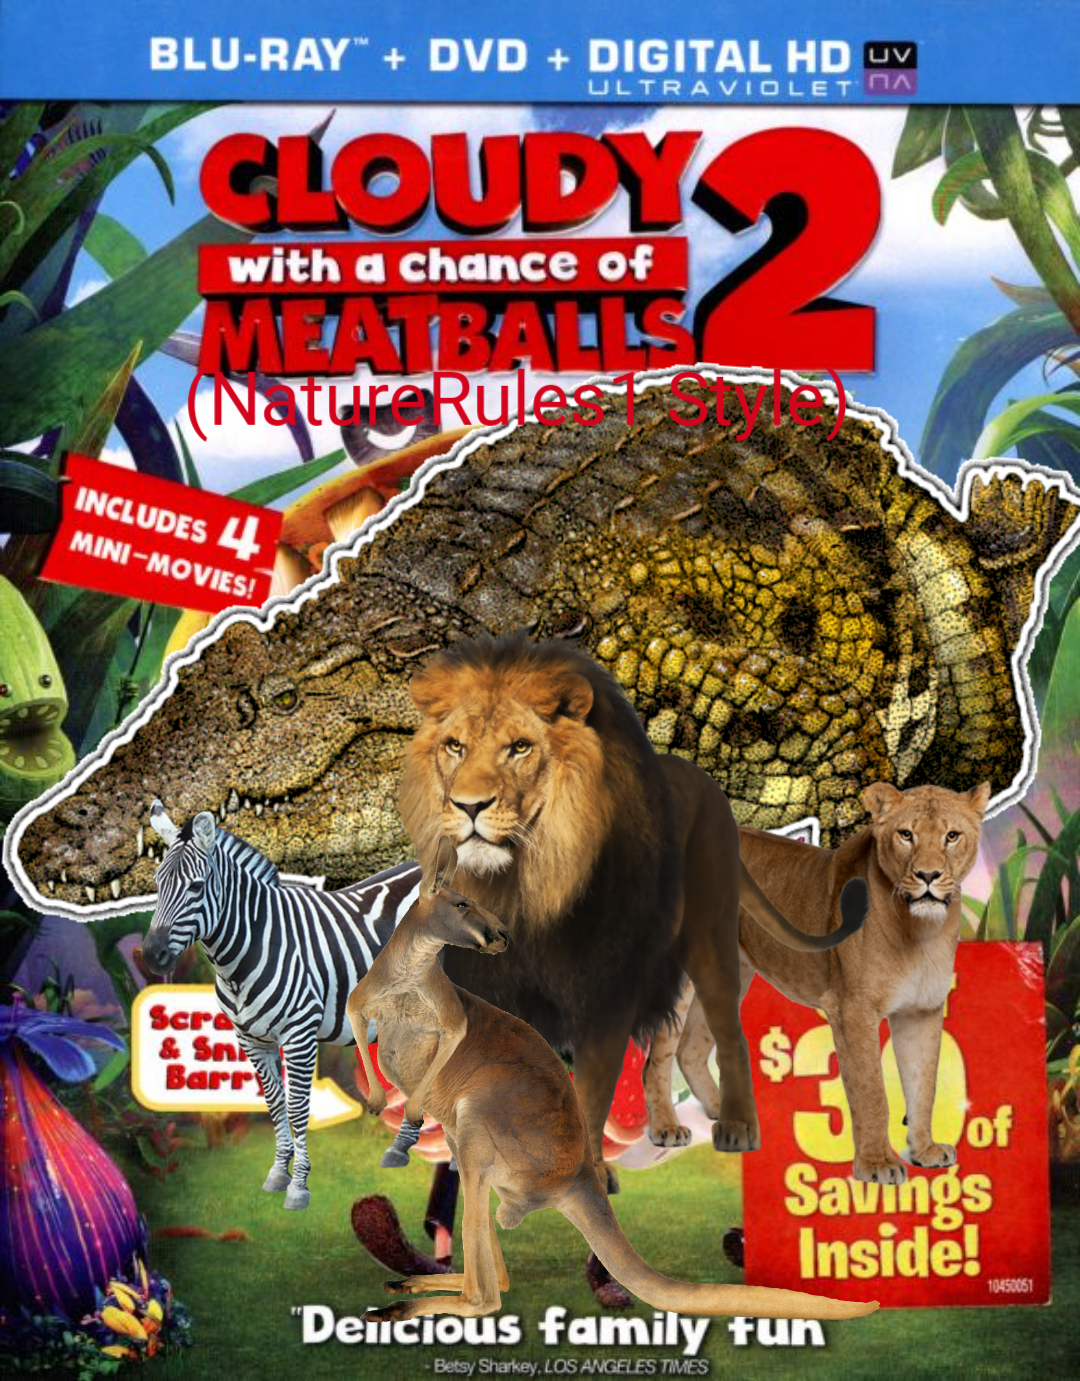 Cloudy With a Chance of Meatballs 2 (NatureRules1 Style)